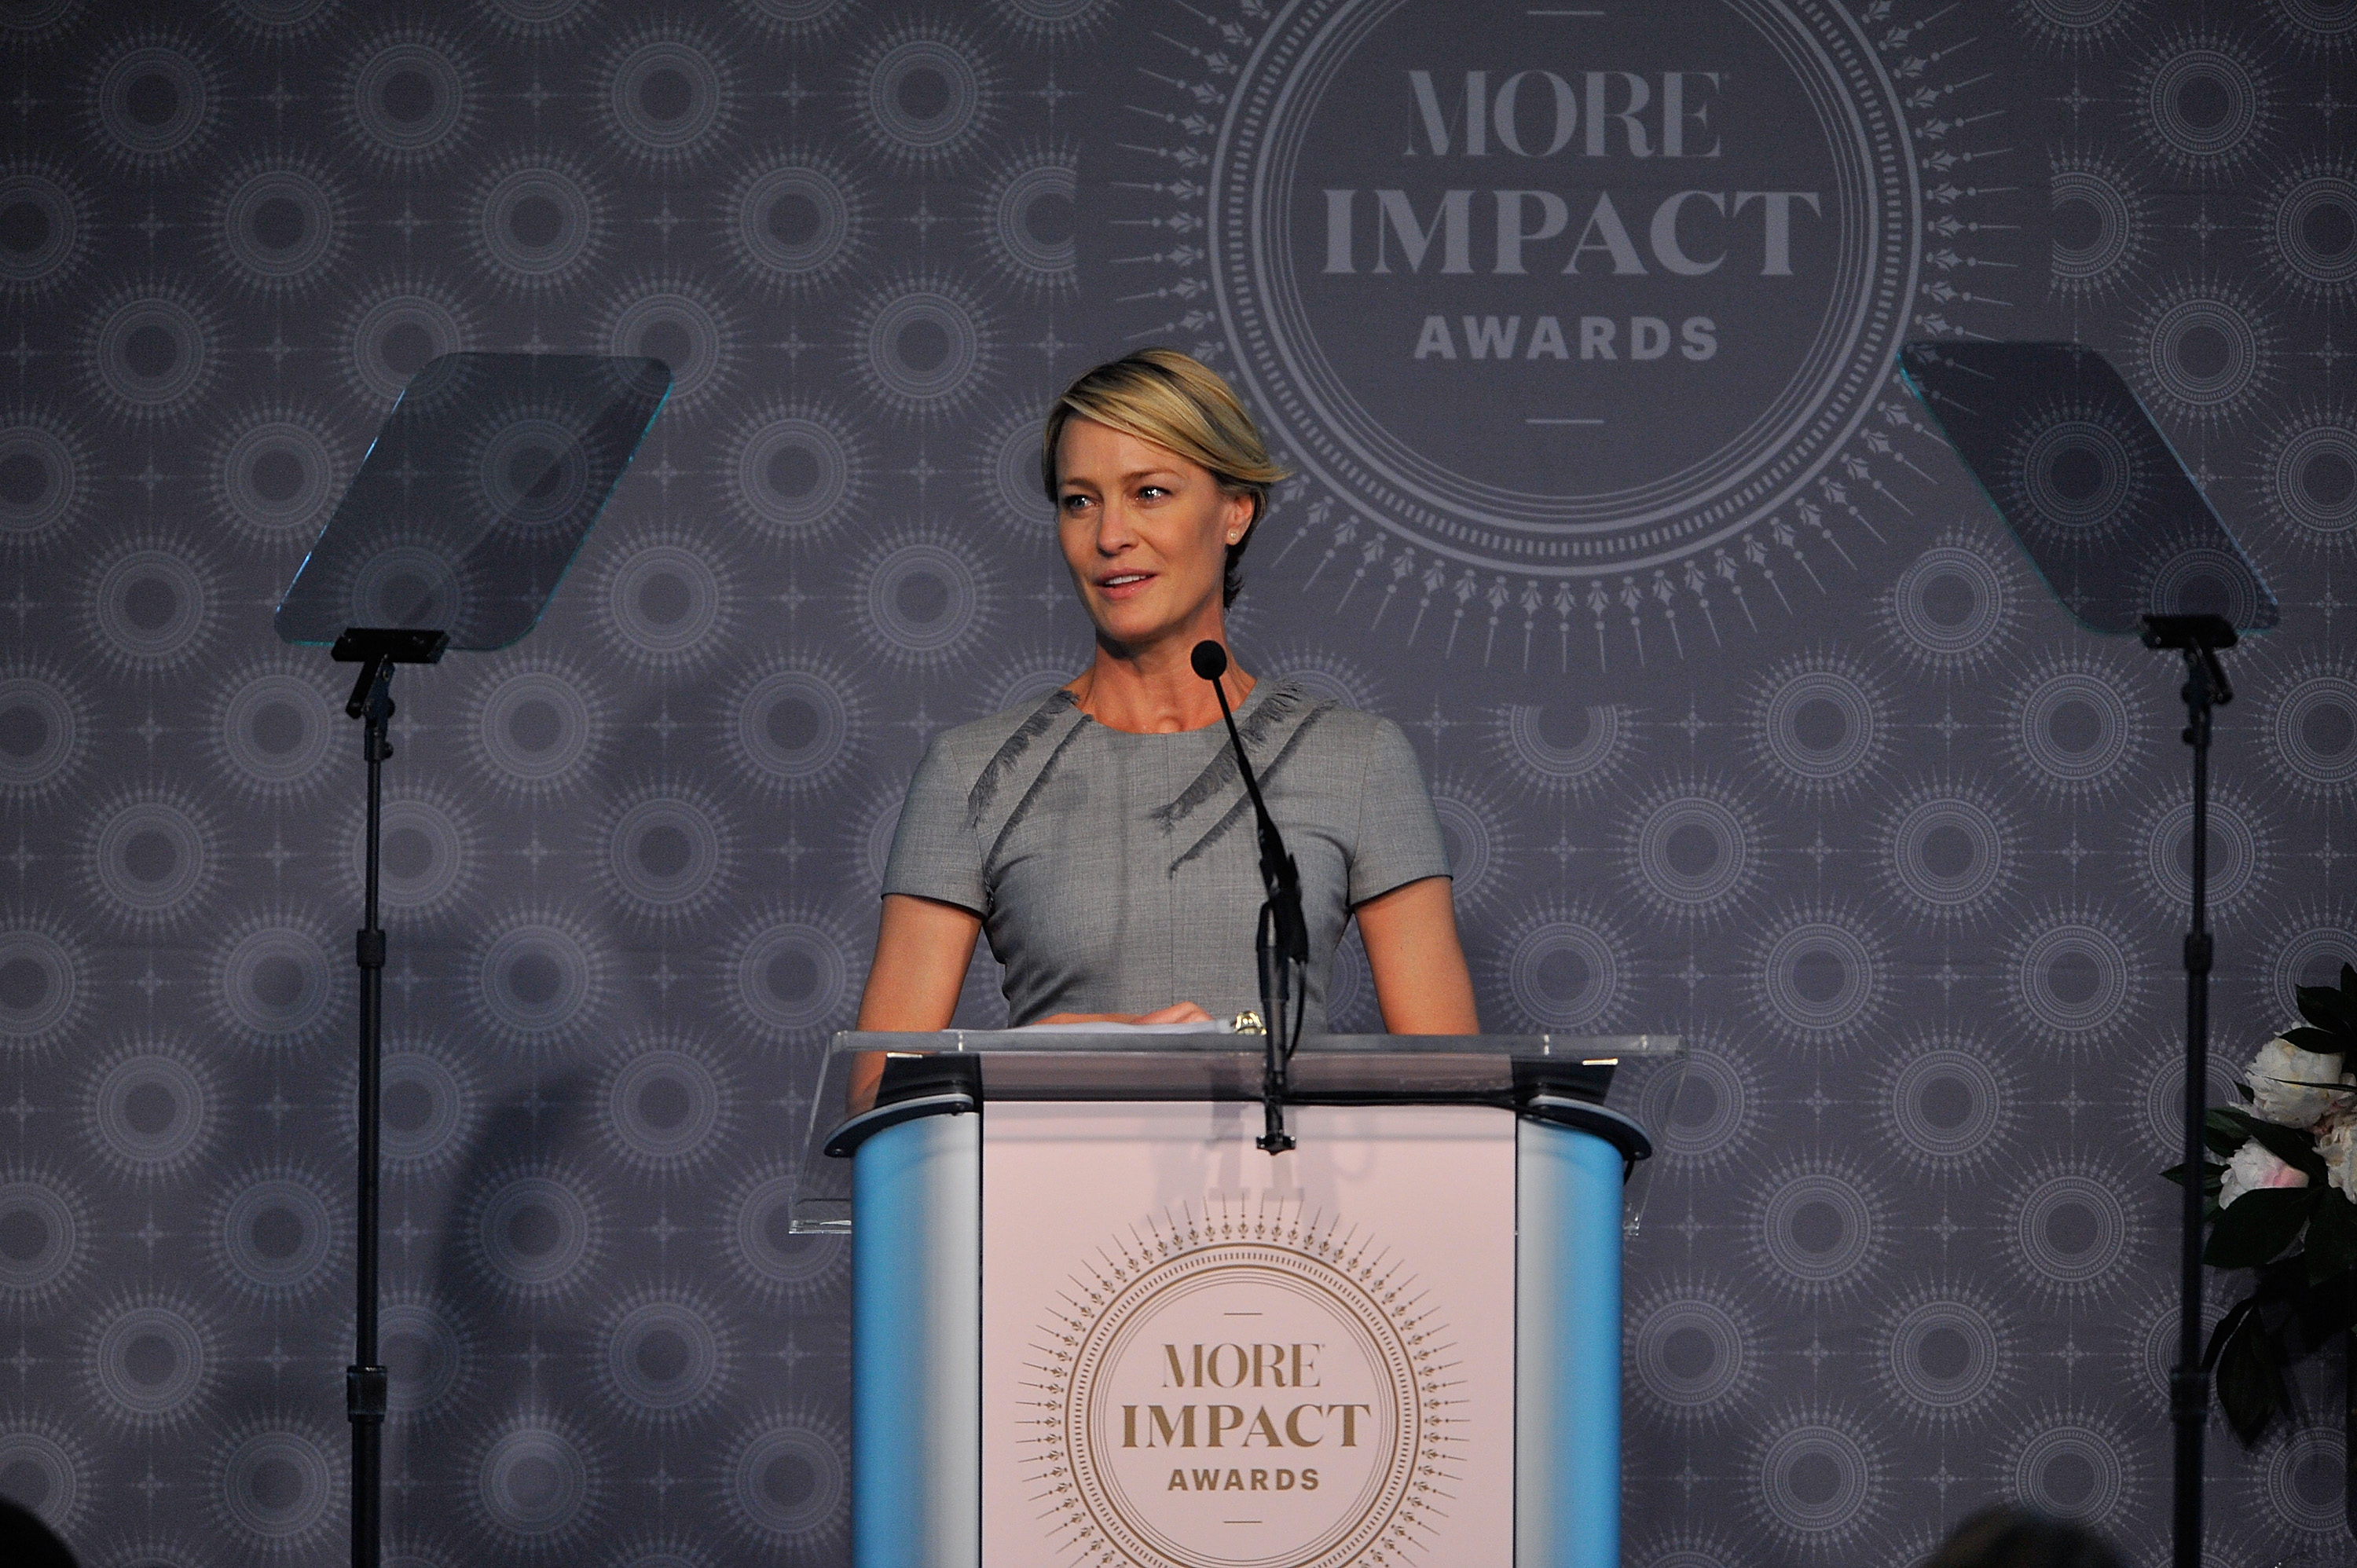 Robin Wright speaks at the 2015 MORE Impact Awards Luncheon at The Newseum on June 29, 2015 in Washington, DC.